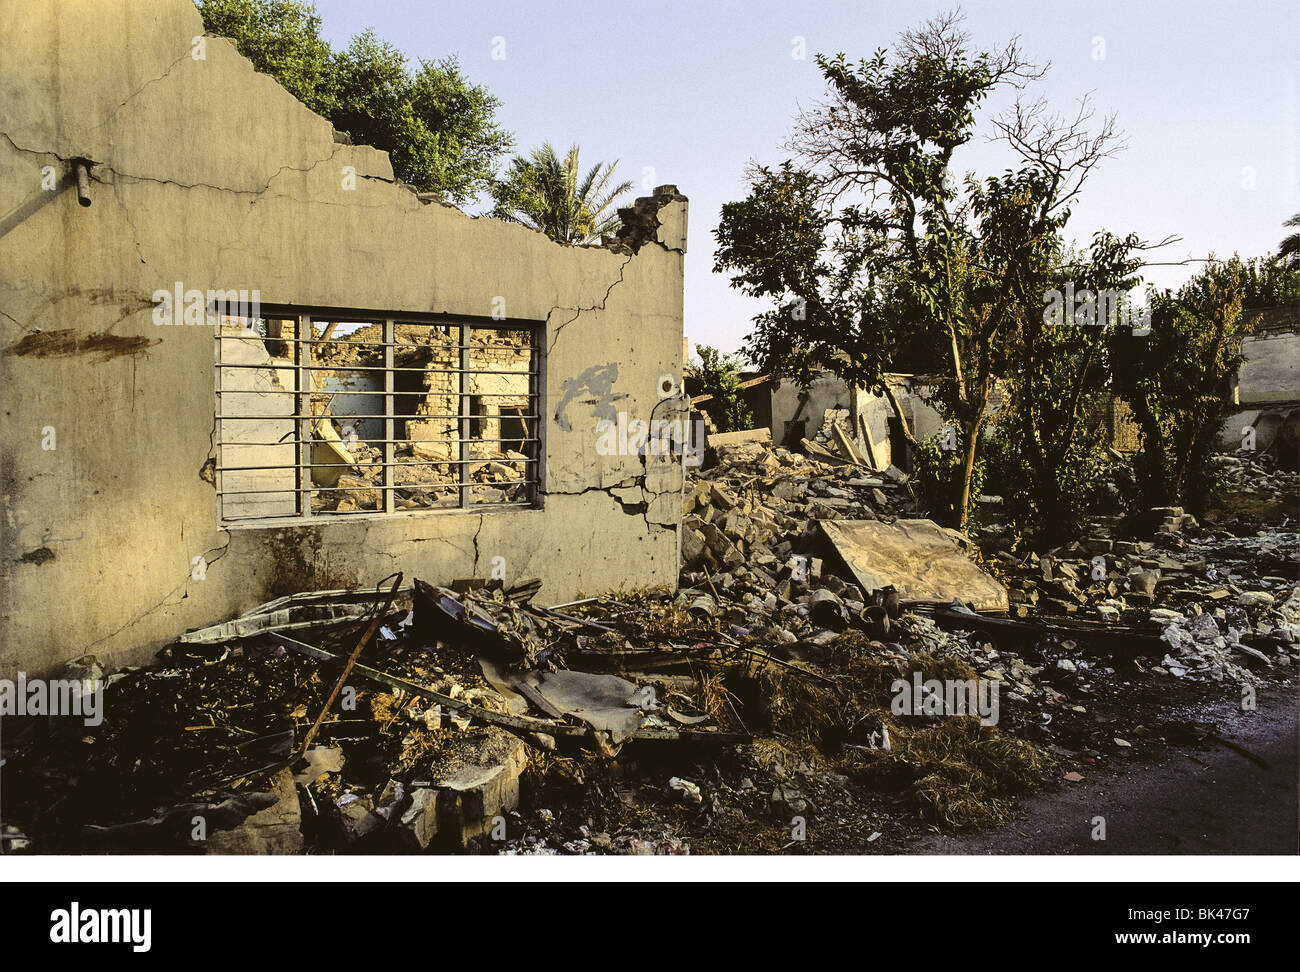 Bombed-out residence from the Persian Gulf War (2 August 1990 – 28 February 1991), Baghad, Iraq 1991 - Stock Image